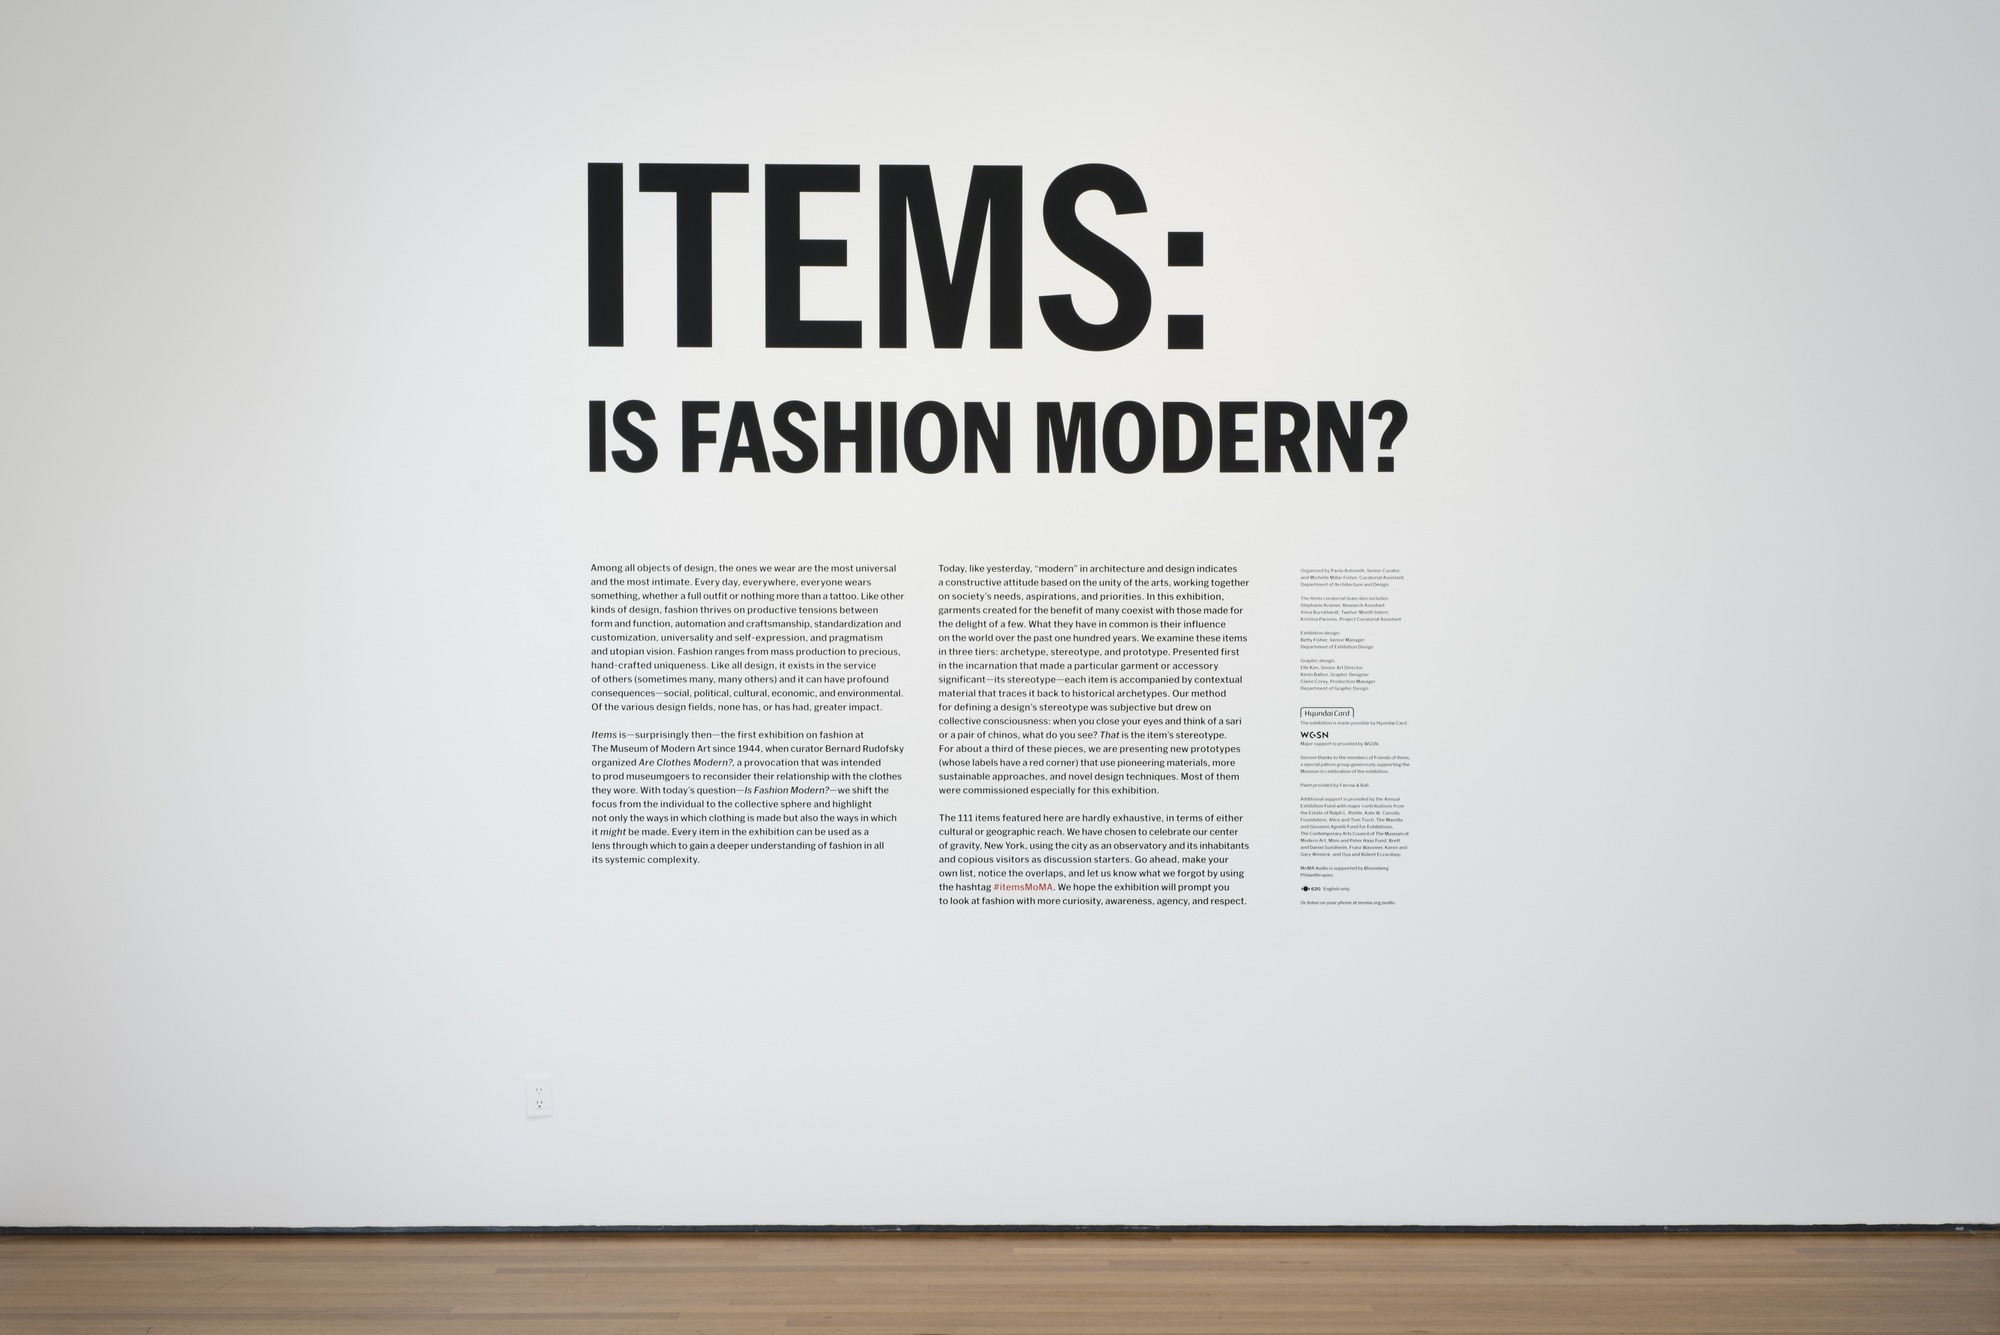 Items: Is Fashion Modern? Exhibit – Response